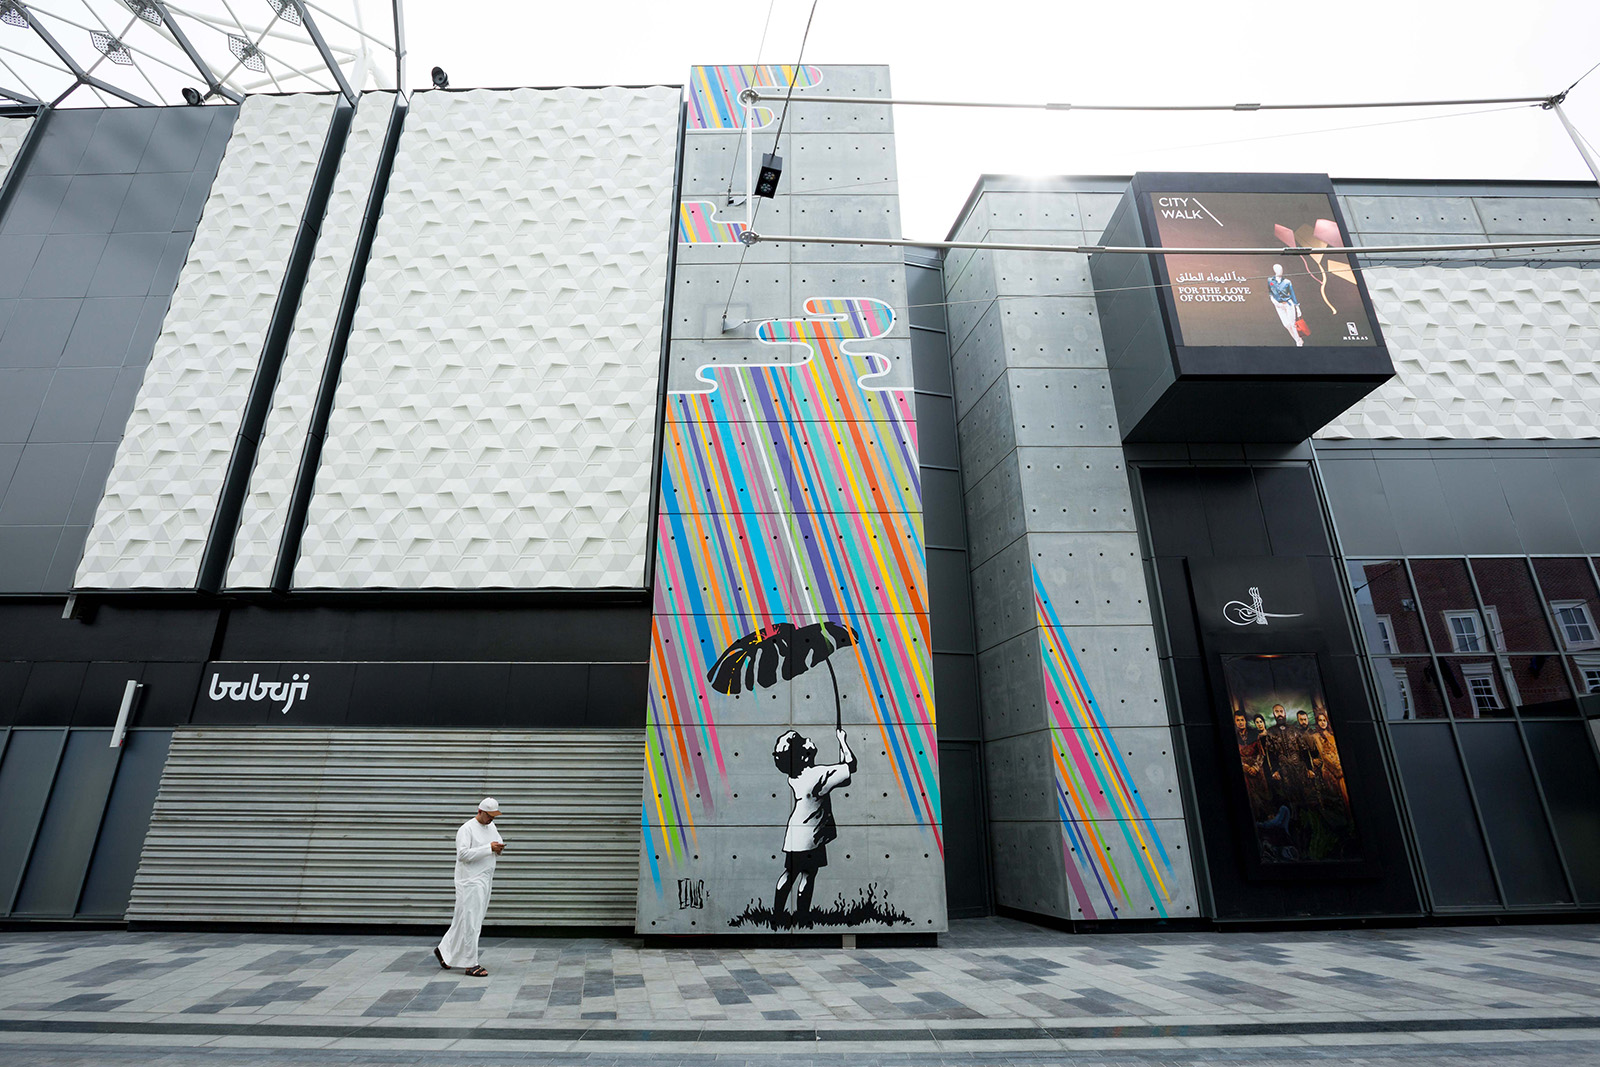 Eelus's mural for Dubai Walls